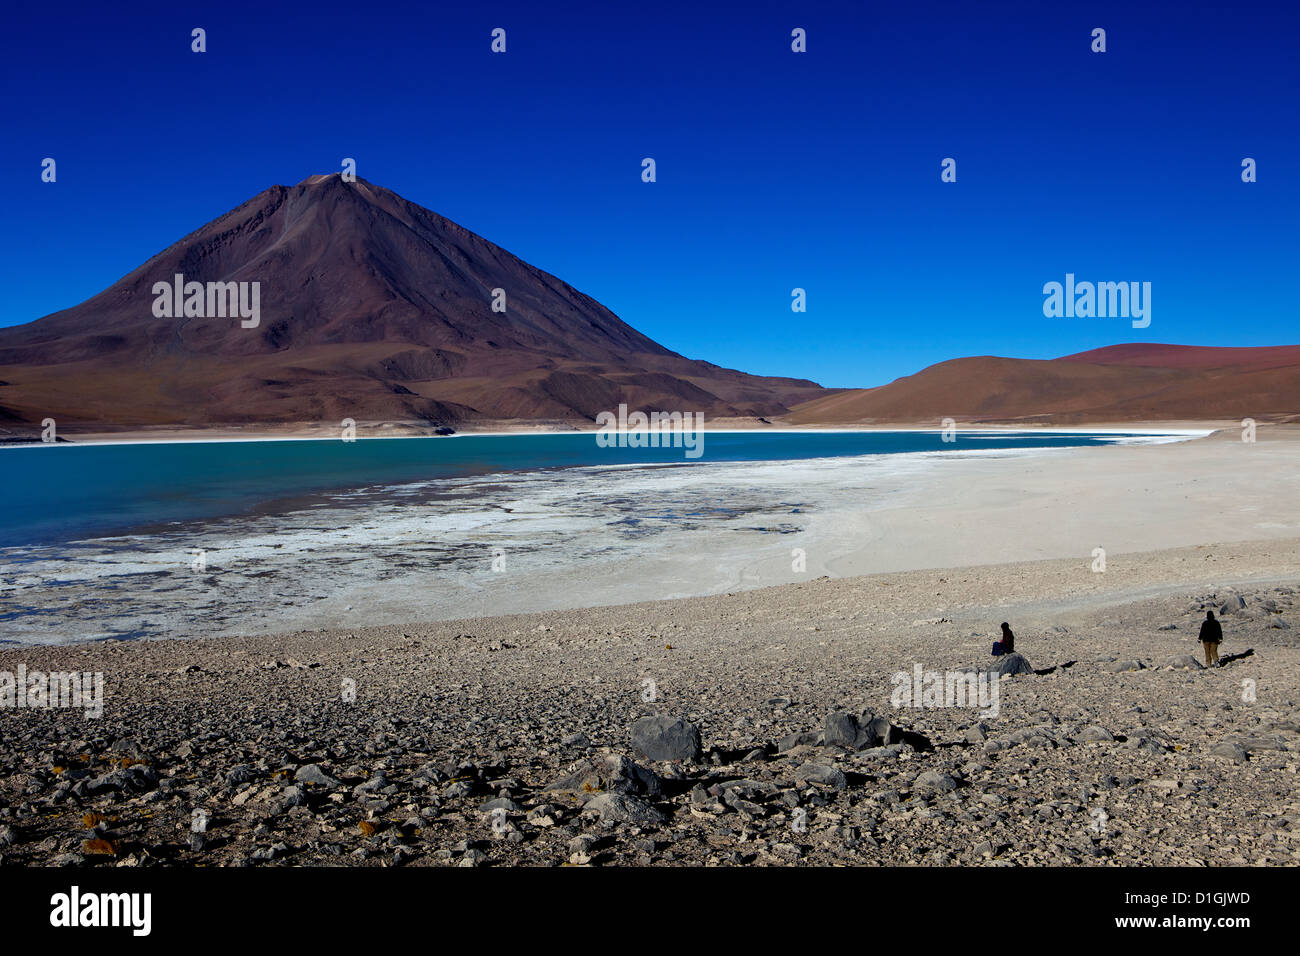 The Laguna Verde with Volcan Licancabur, Eduardo Avaroa Andean Fauna National Reserve, Southwest Highlands, Bolivia - Stock Image